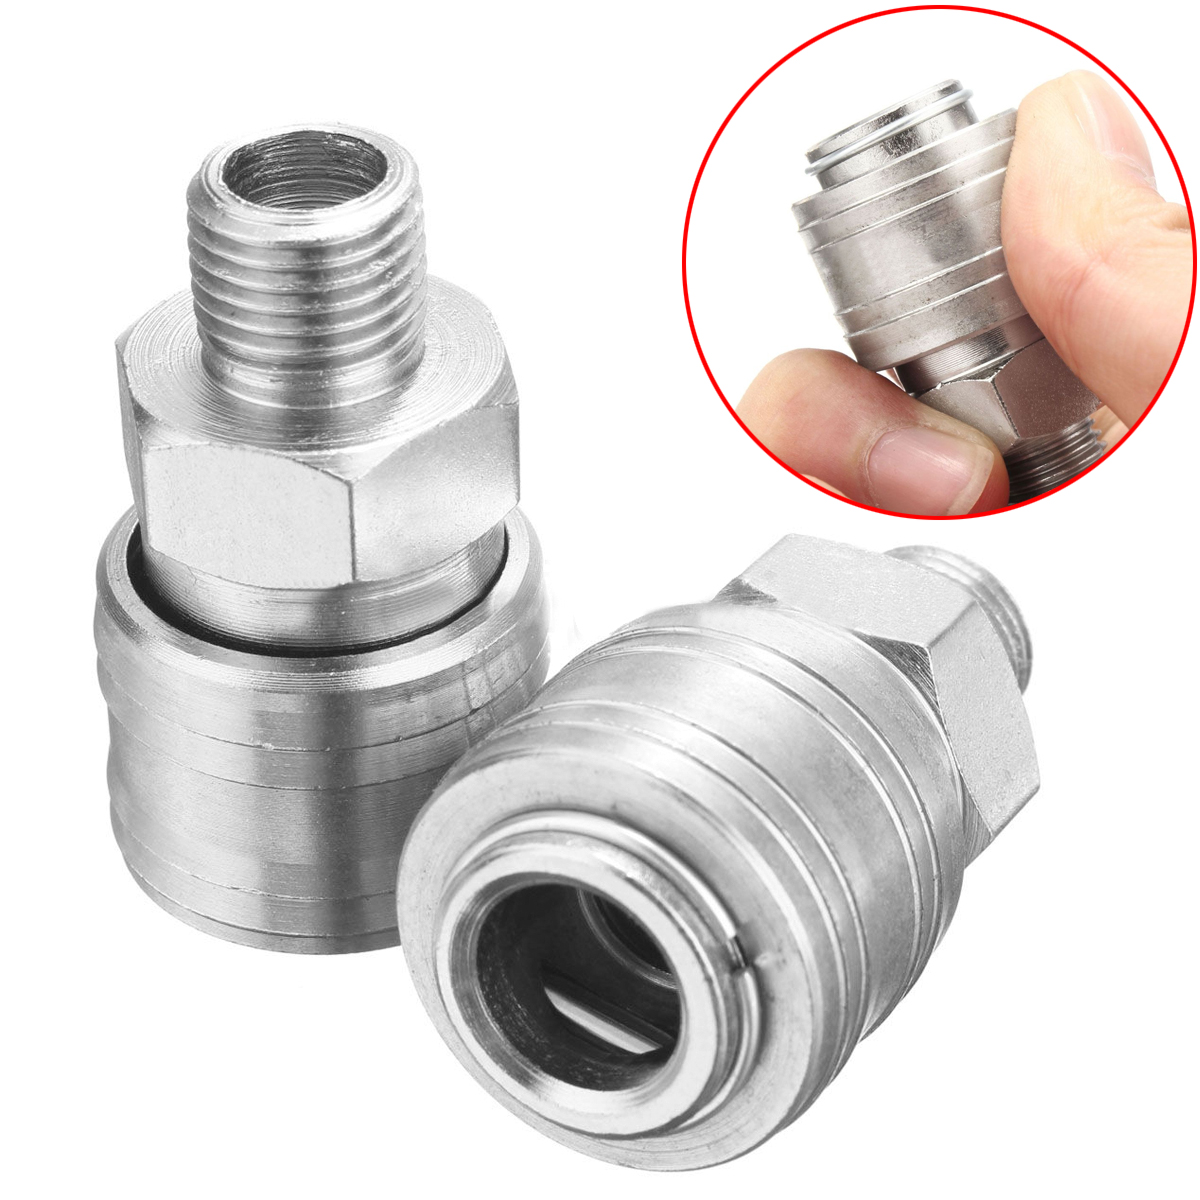 2pcs New Air Line Hose Compressor Connector 1/4 BSP Male Thread Quick Release Coupling Set air compressor o ring 1 2pt thread oil level sight glass